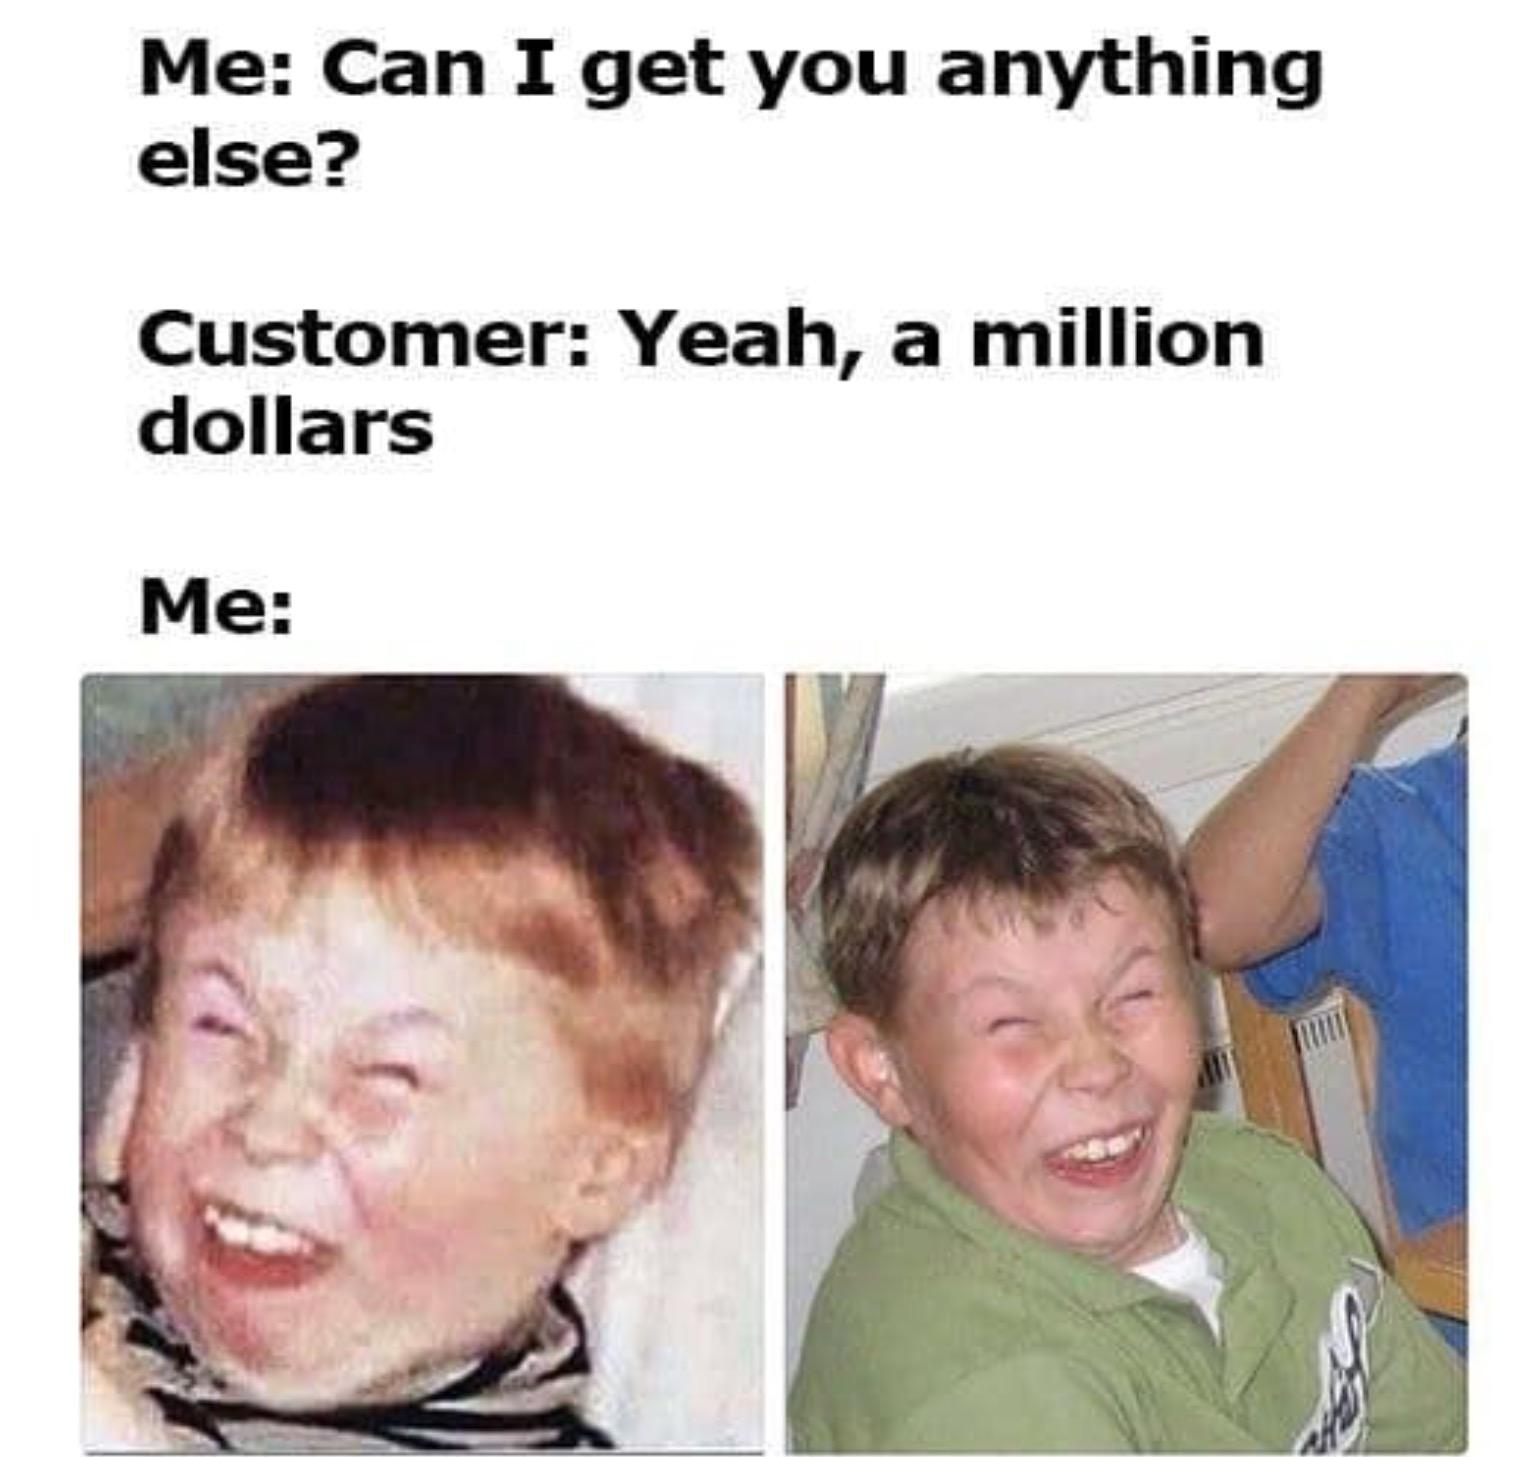 17-relatable-memes-for-students-working-in-retail-2